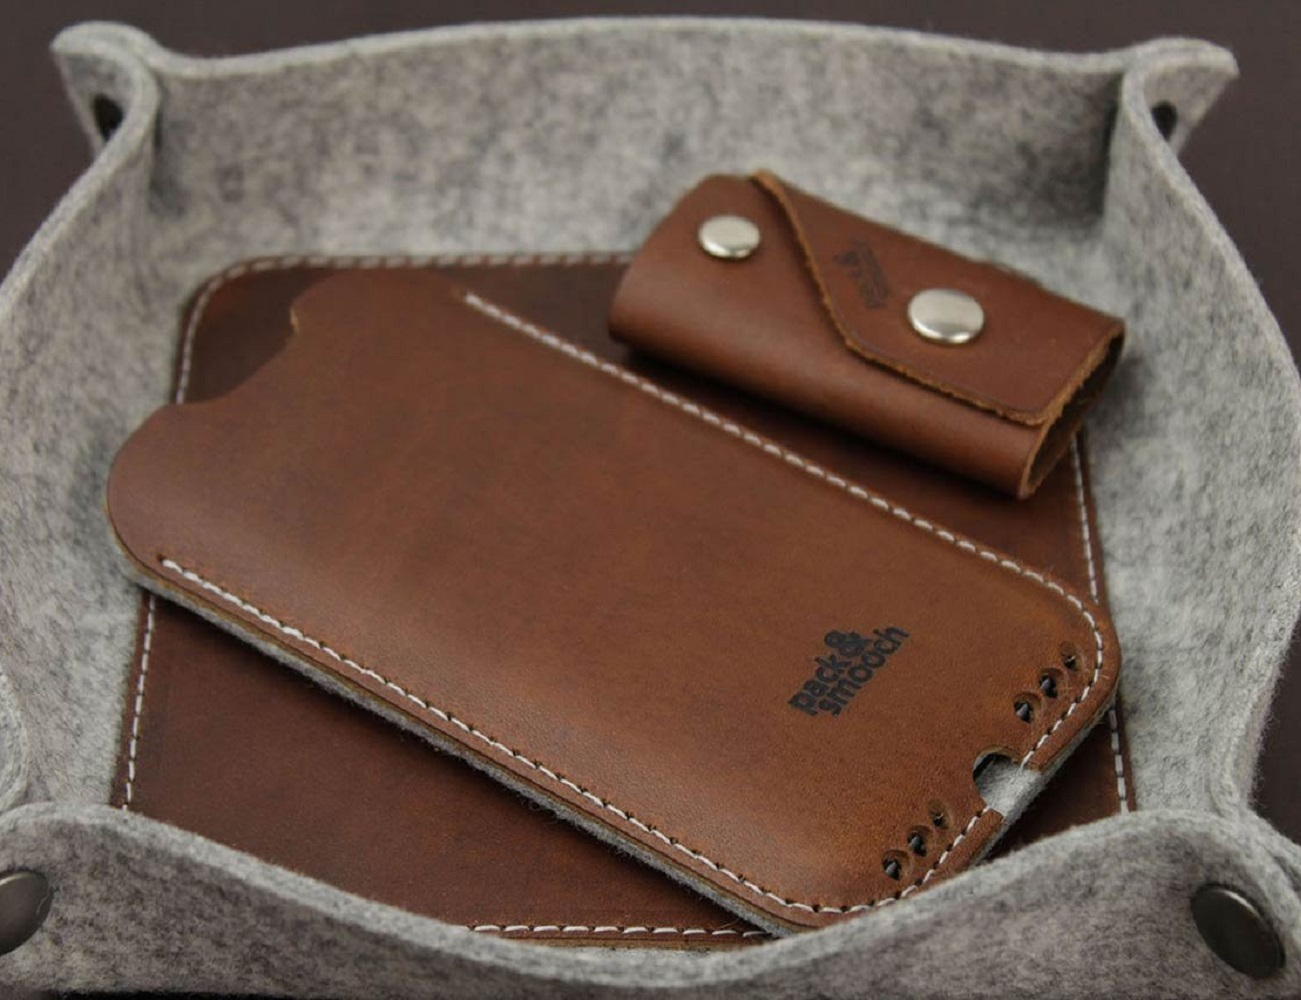 IPhone+6%2F6s+Case+%26%238211%3B+100%25+Wool+Felt%2C+Vegetable+Tanned+Leather